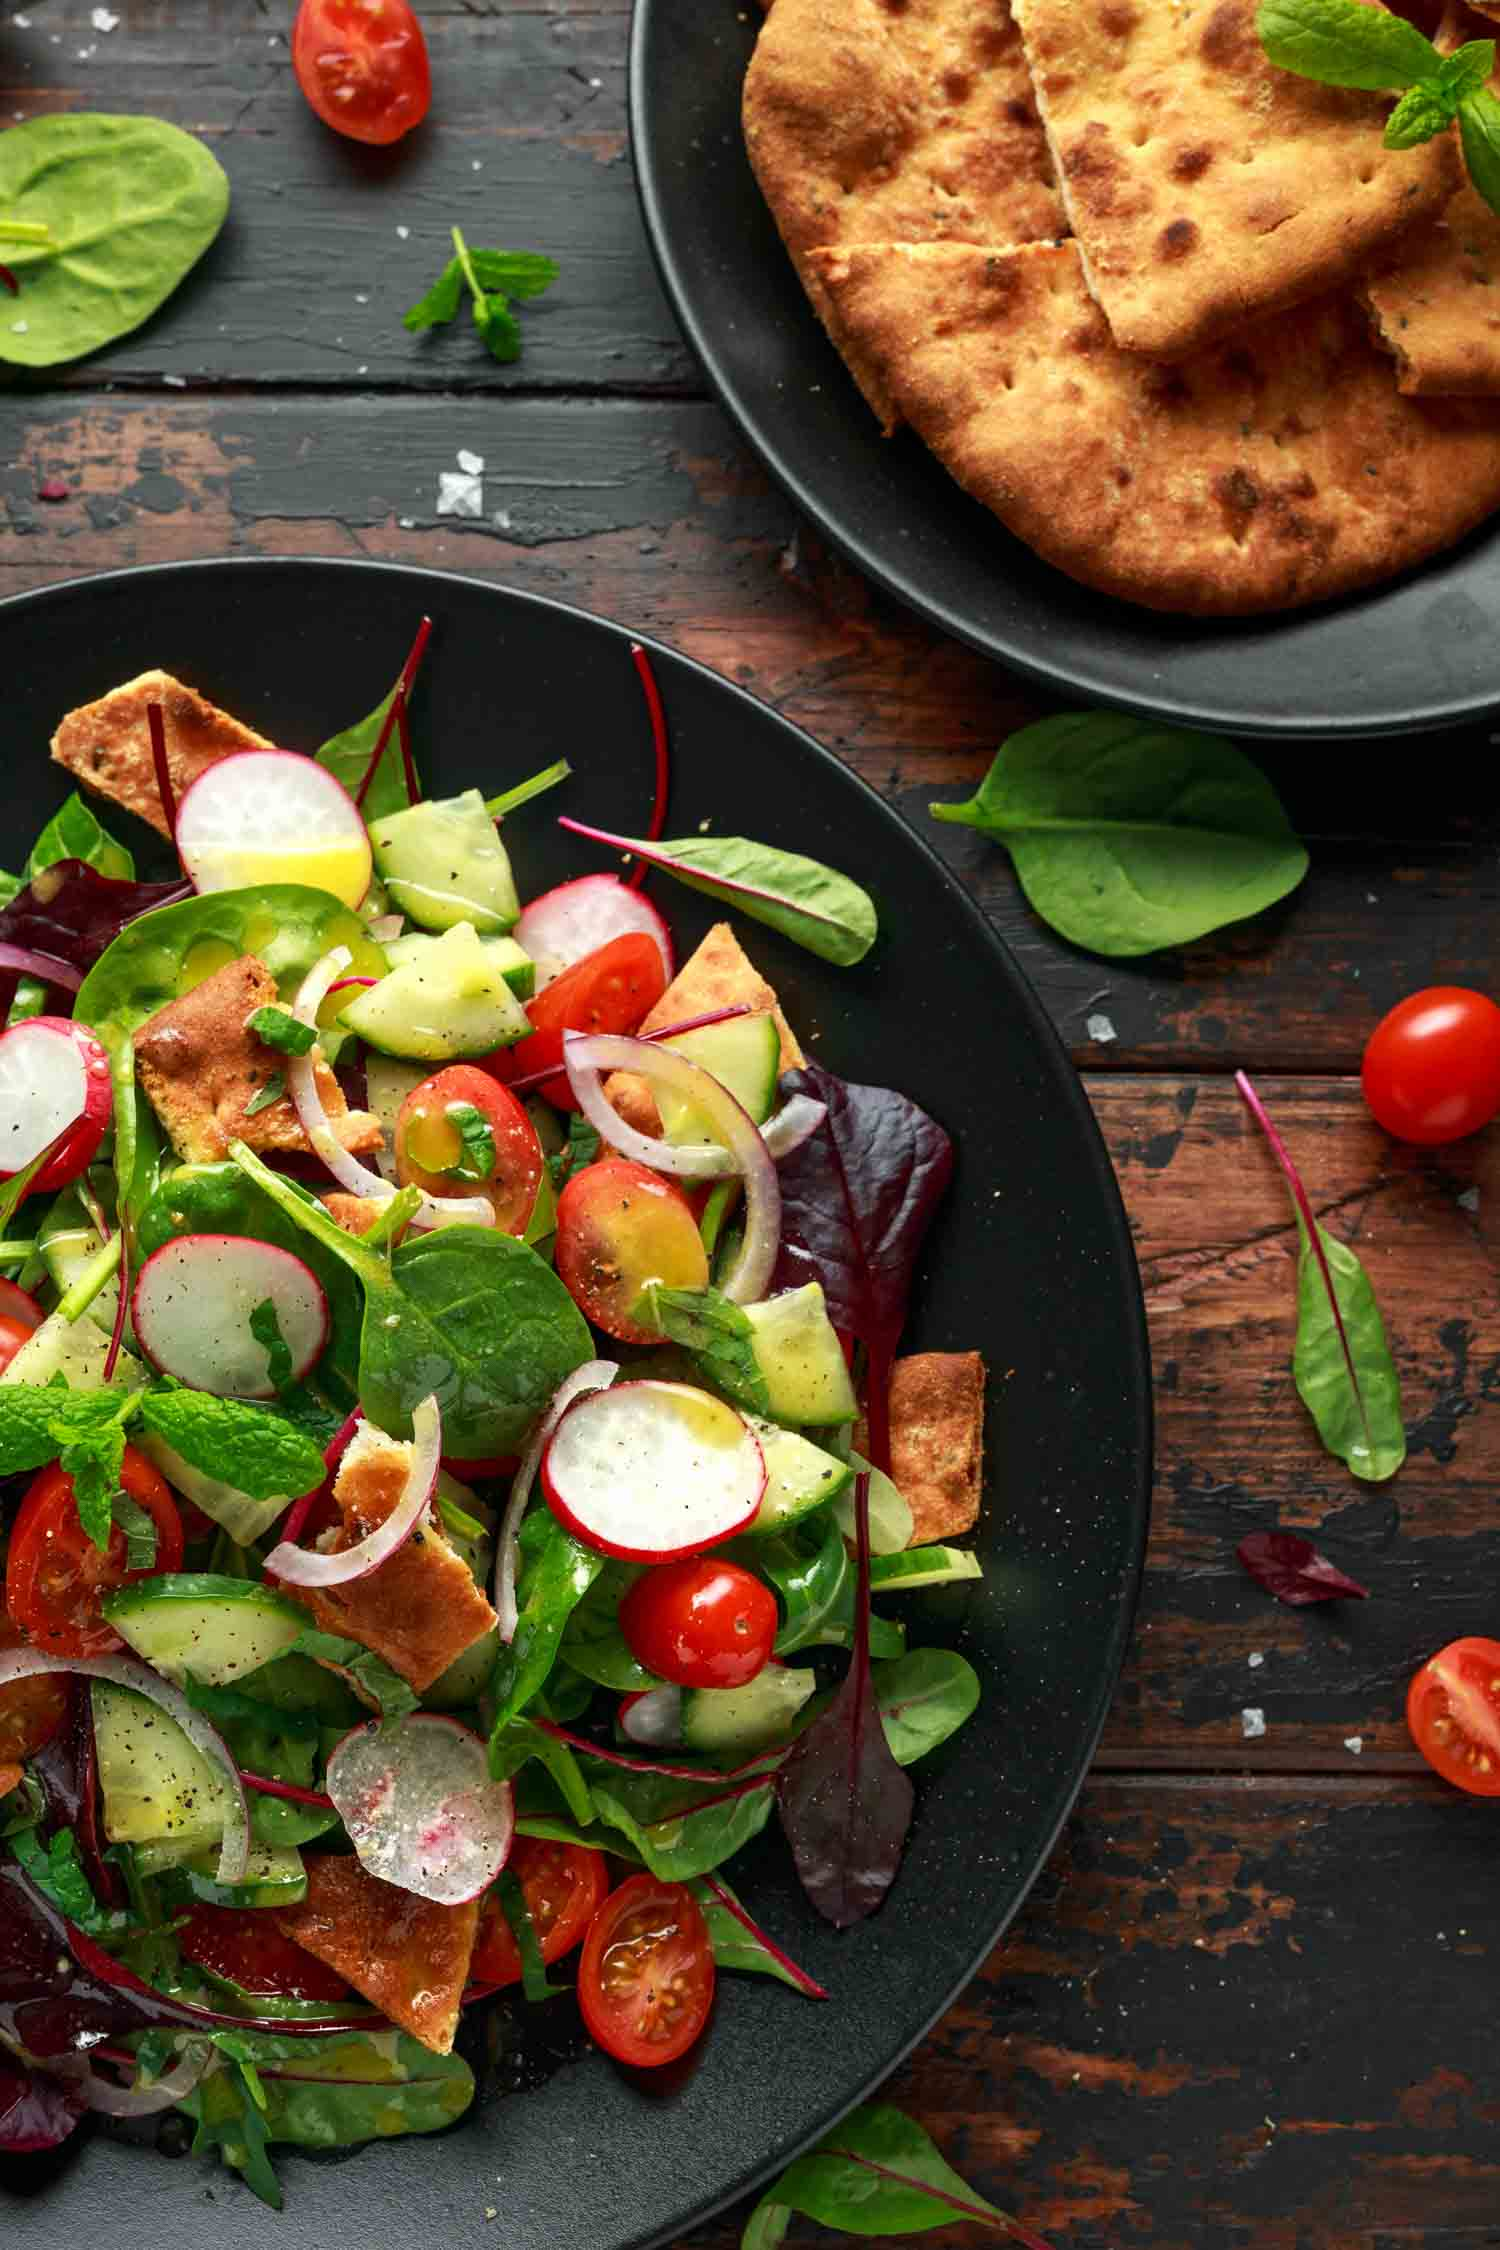 Traditional food in Jordan fattoush salad on a plate with pita croutons, cucumber, tomato, red onion, vegetables mix and herbs